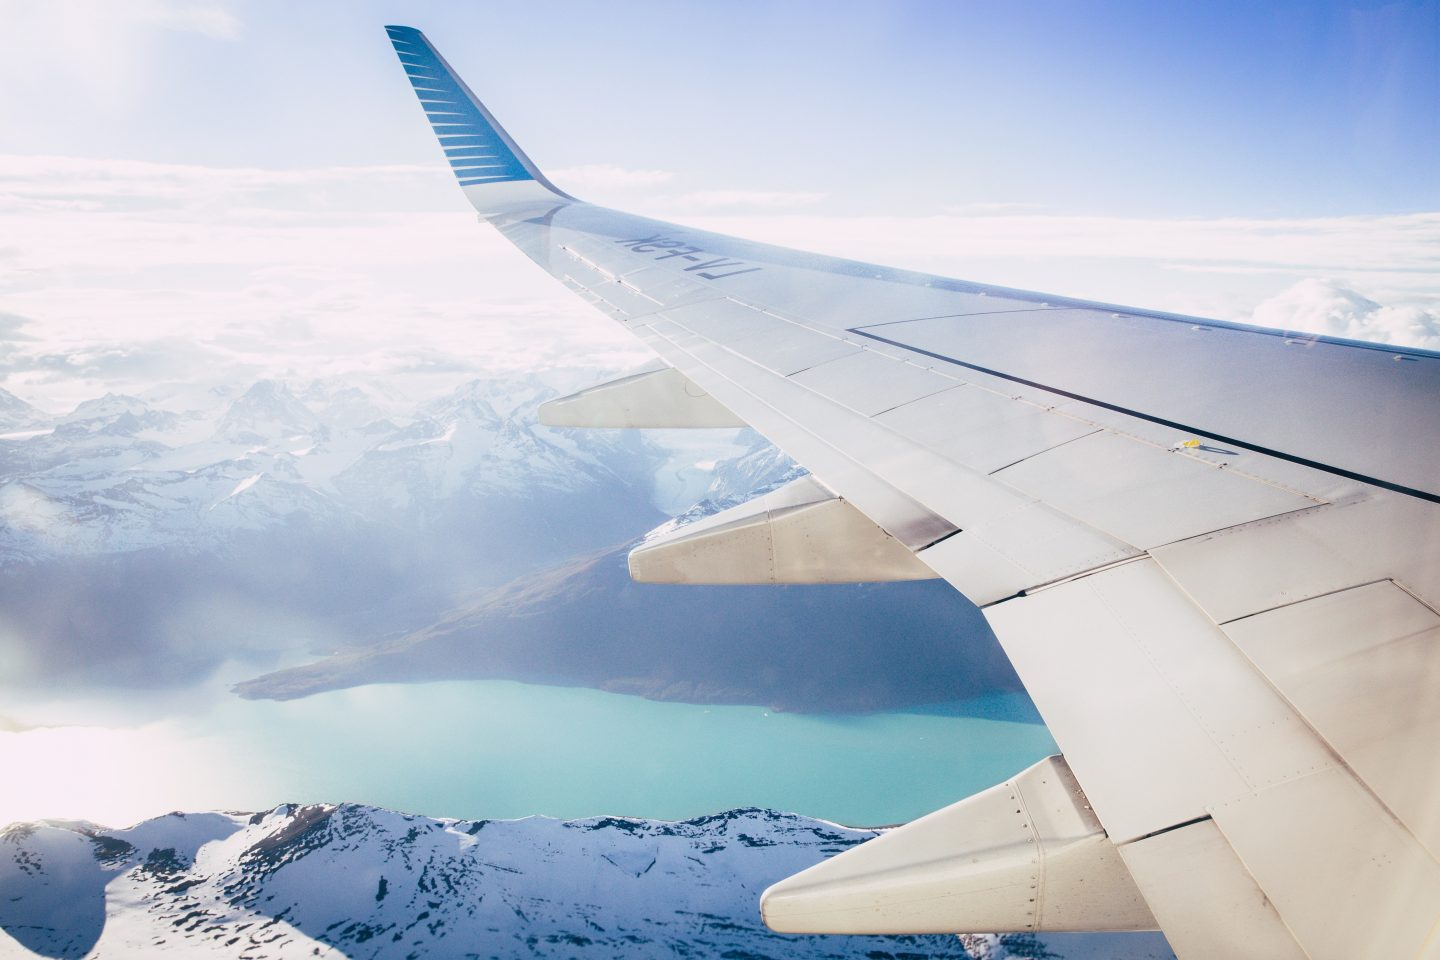 view over the mountains and crystal blue water from the airplane